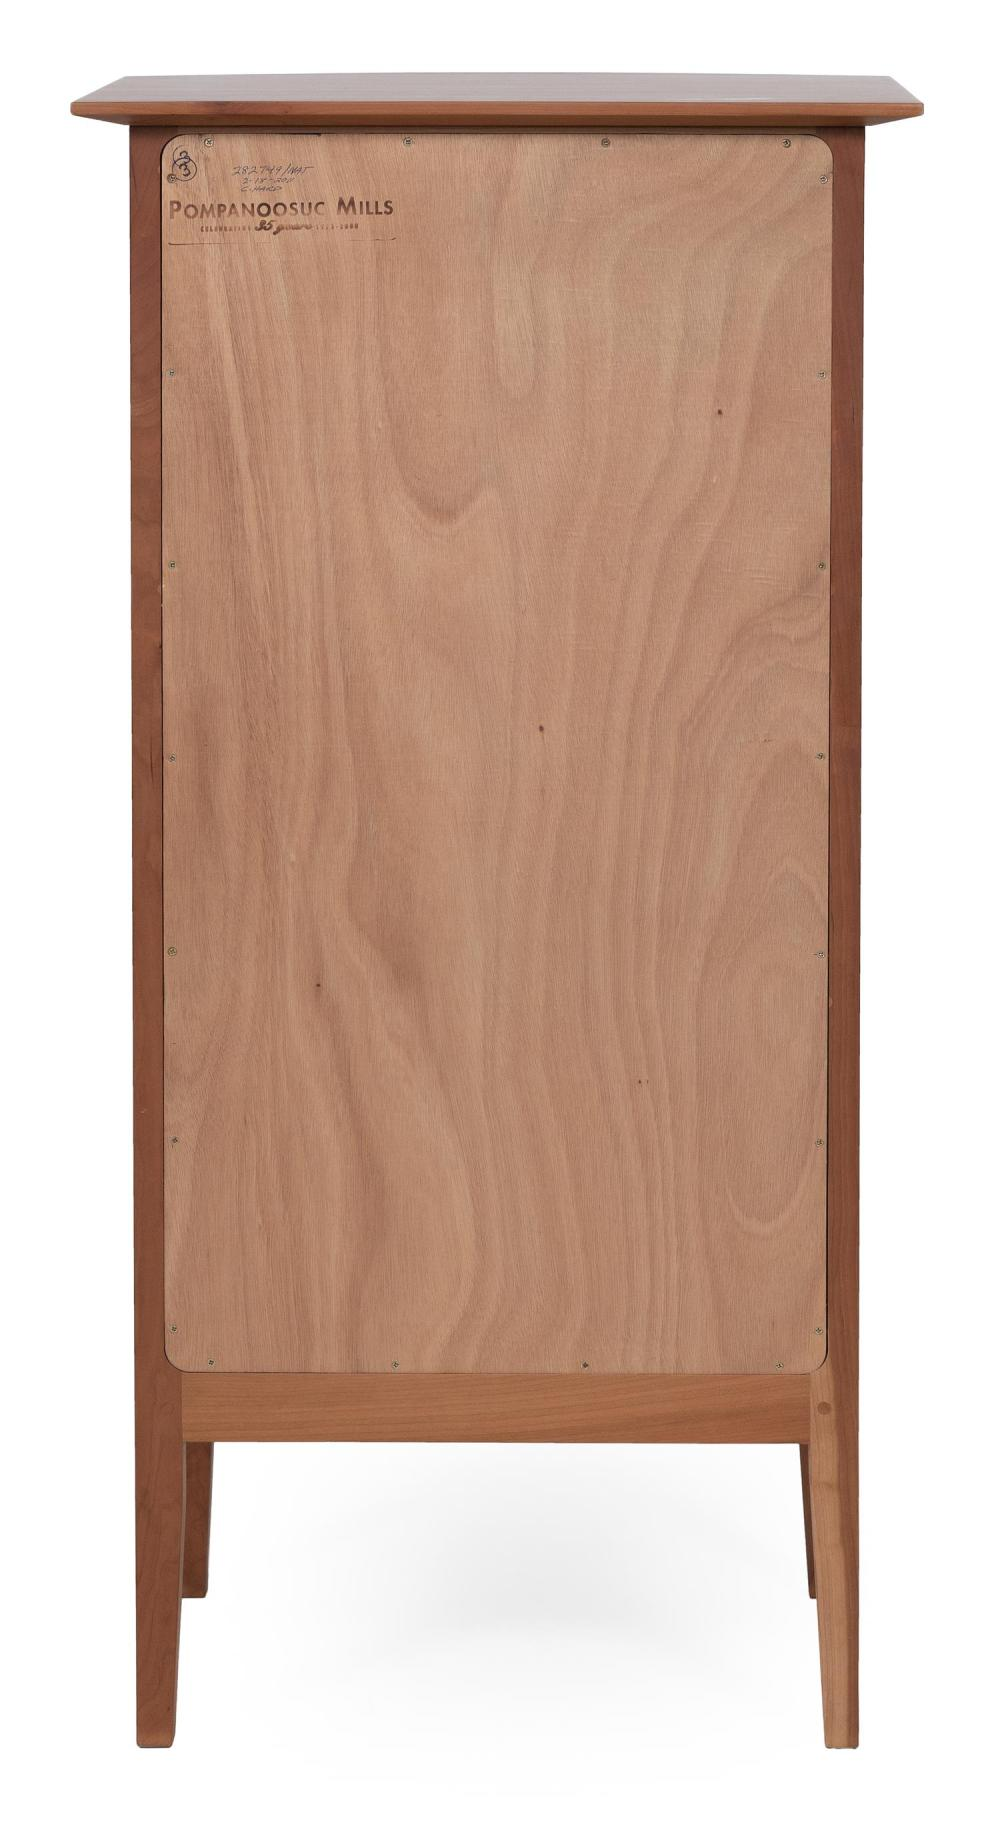 POMPANOOSUC MILLS SIX-DRAWER BOWFRONT LINGERIE CHEST In cherry and hickory. Factory marks. Height 47